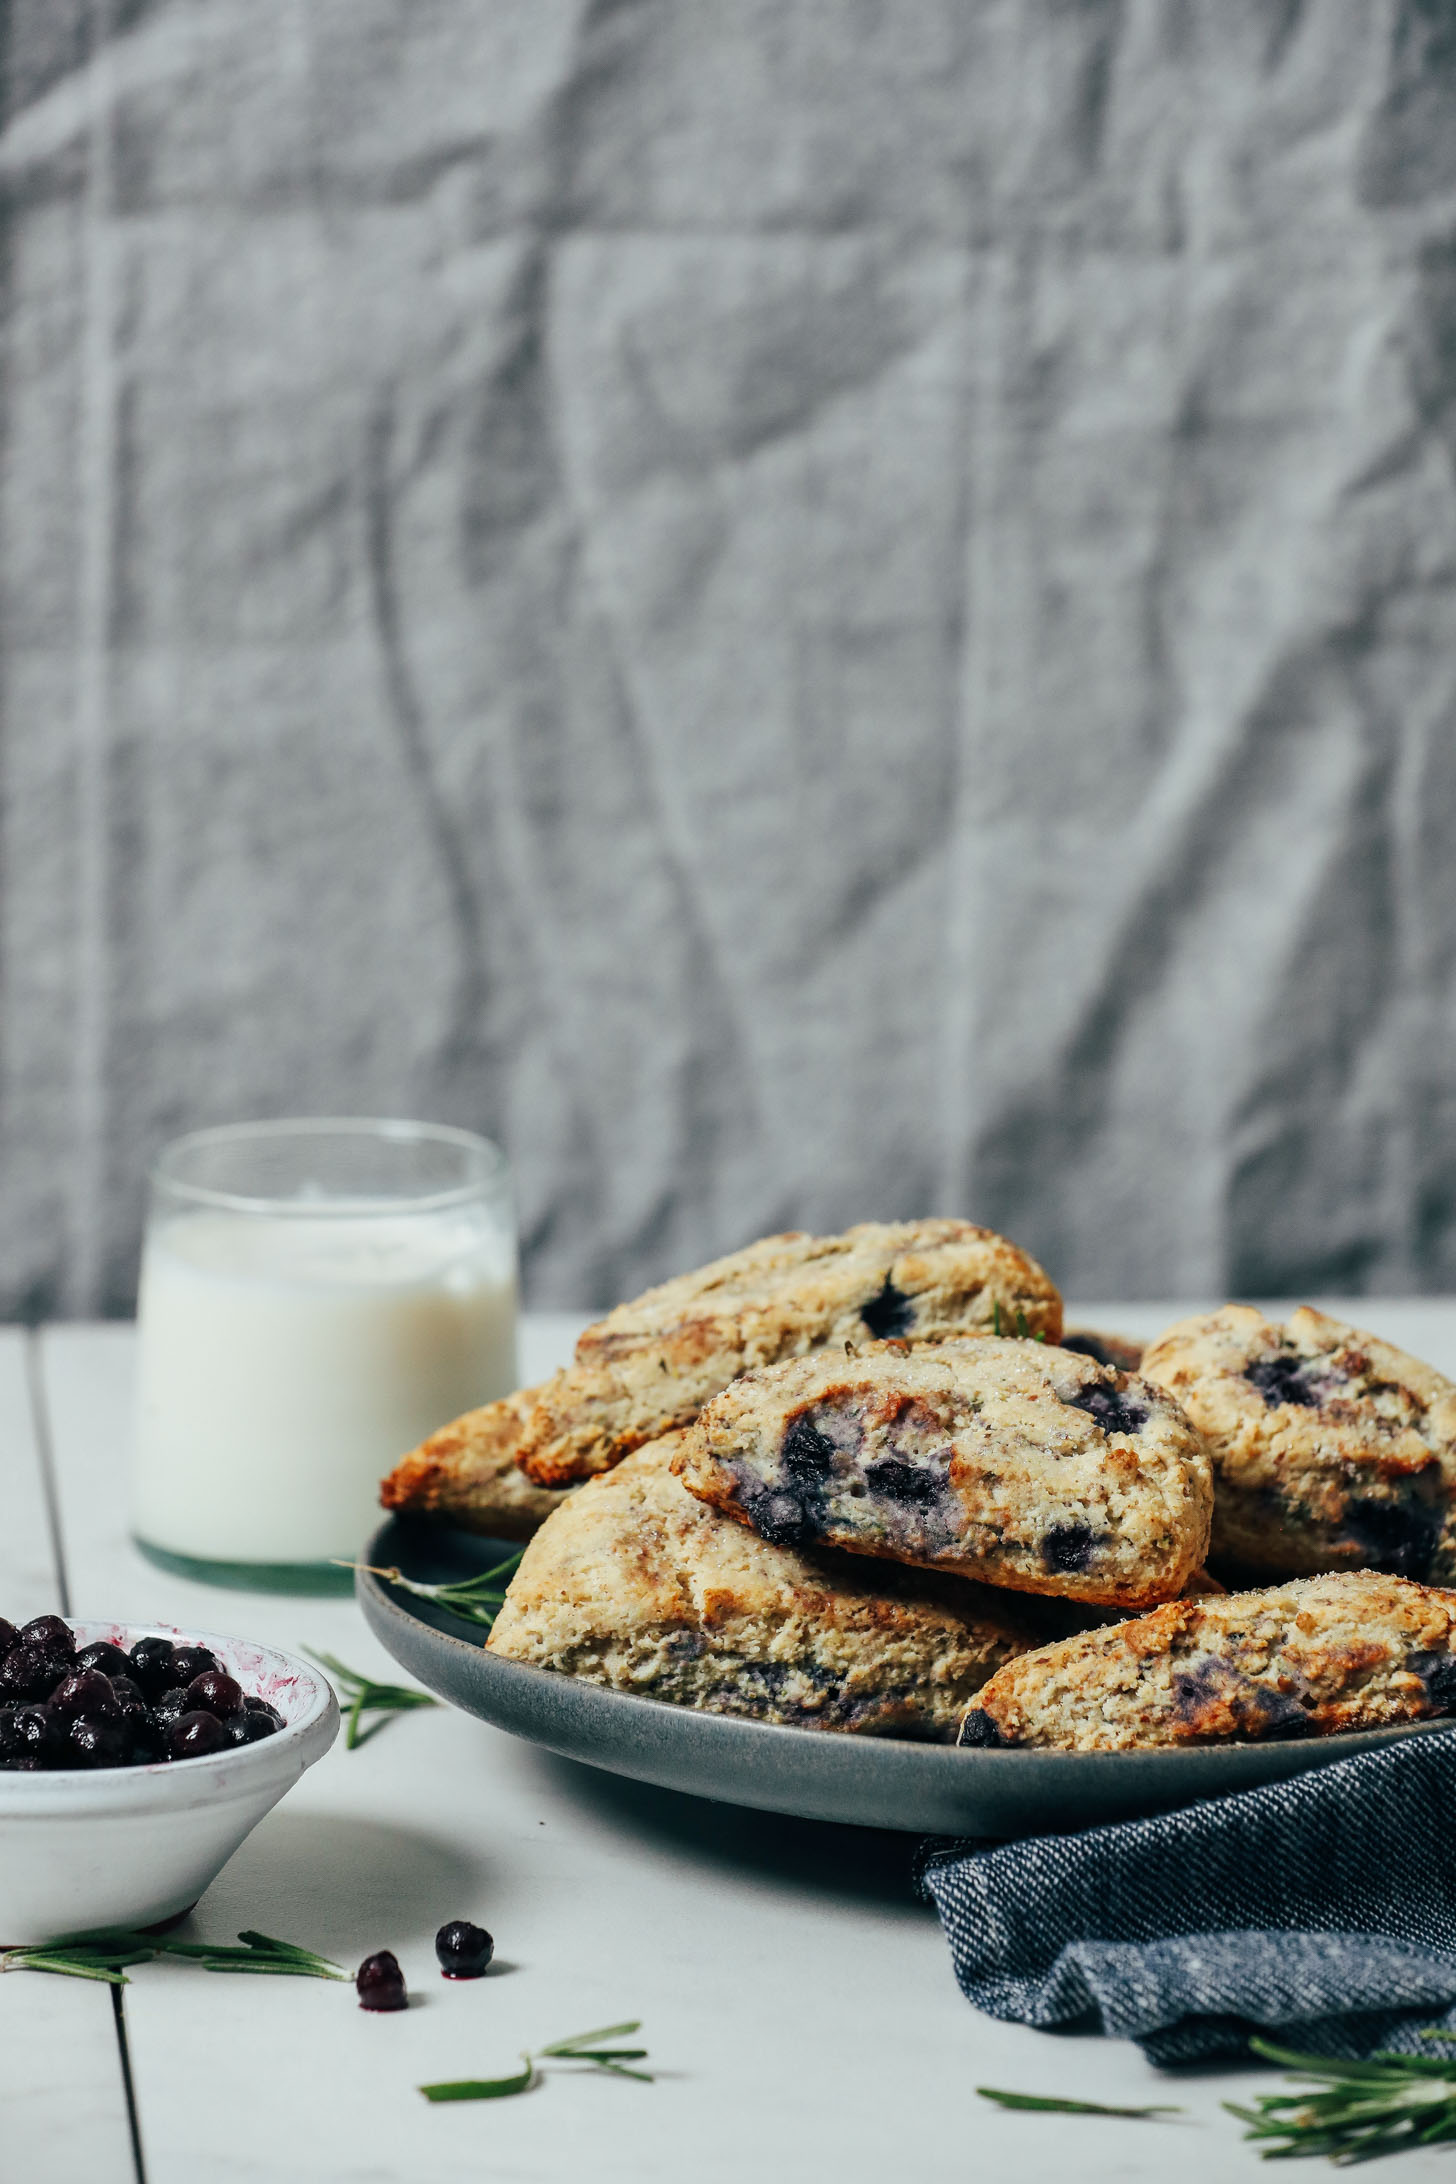 Wild blueberries, rosemary, and almond milk next to a large plate of Gluten Free Scones